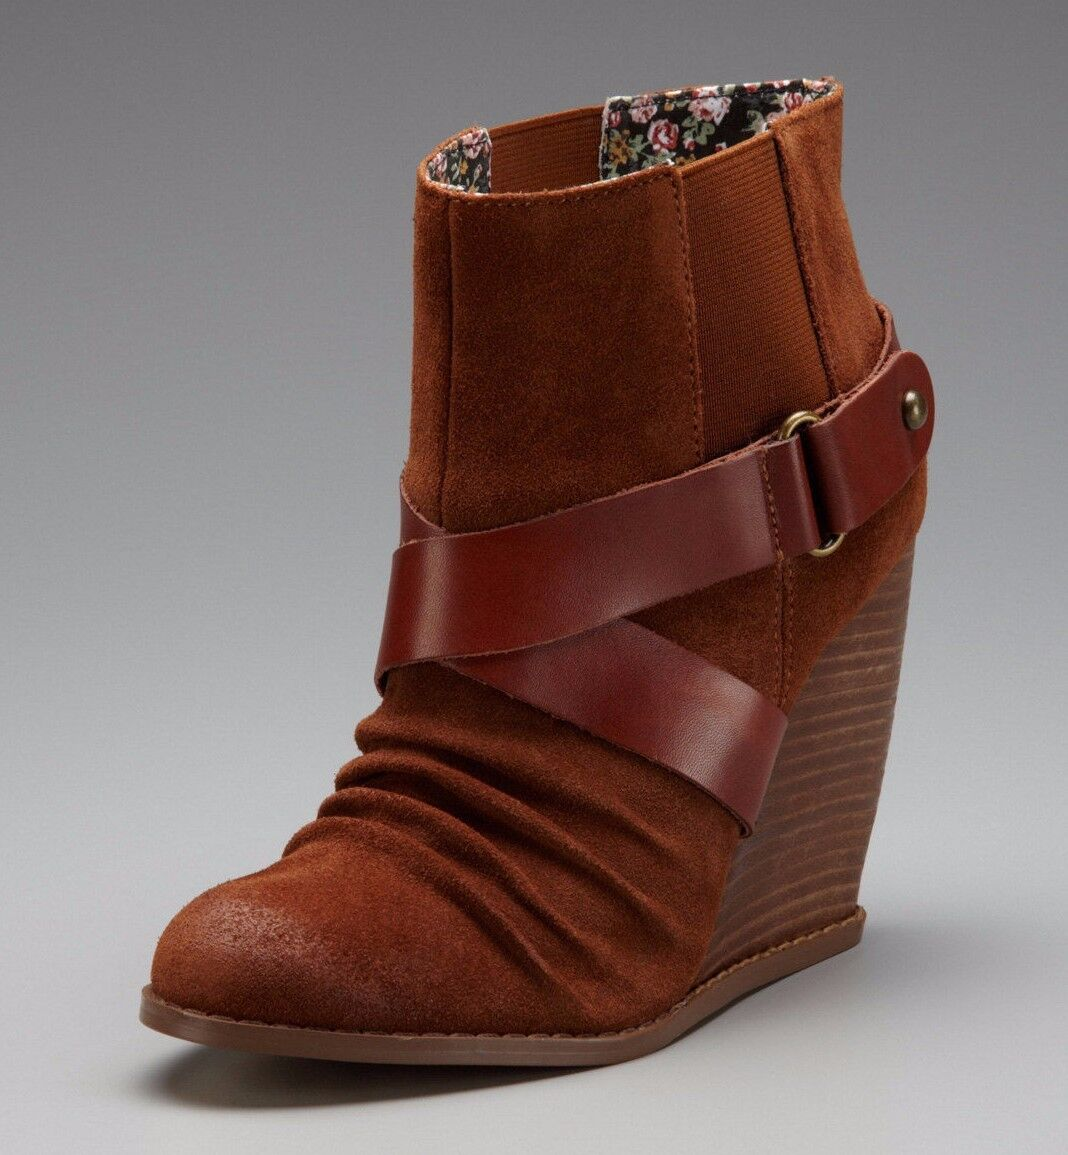 SEYCHELLES chaussures THRILLER WEDGE démarrageIES SUEDE WHISKEY ANKLE bottes 7  140